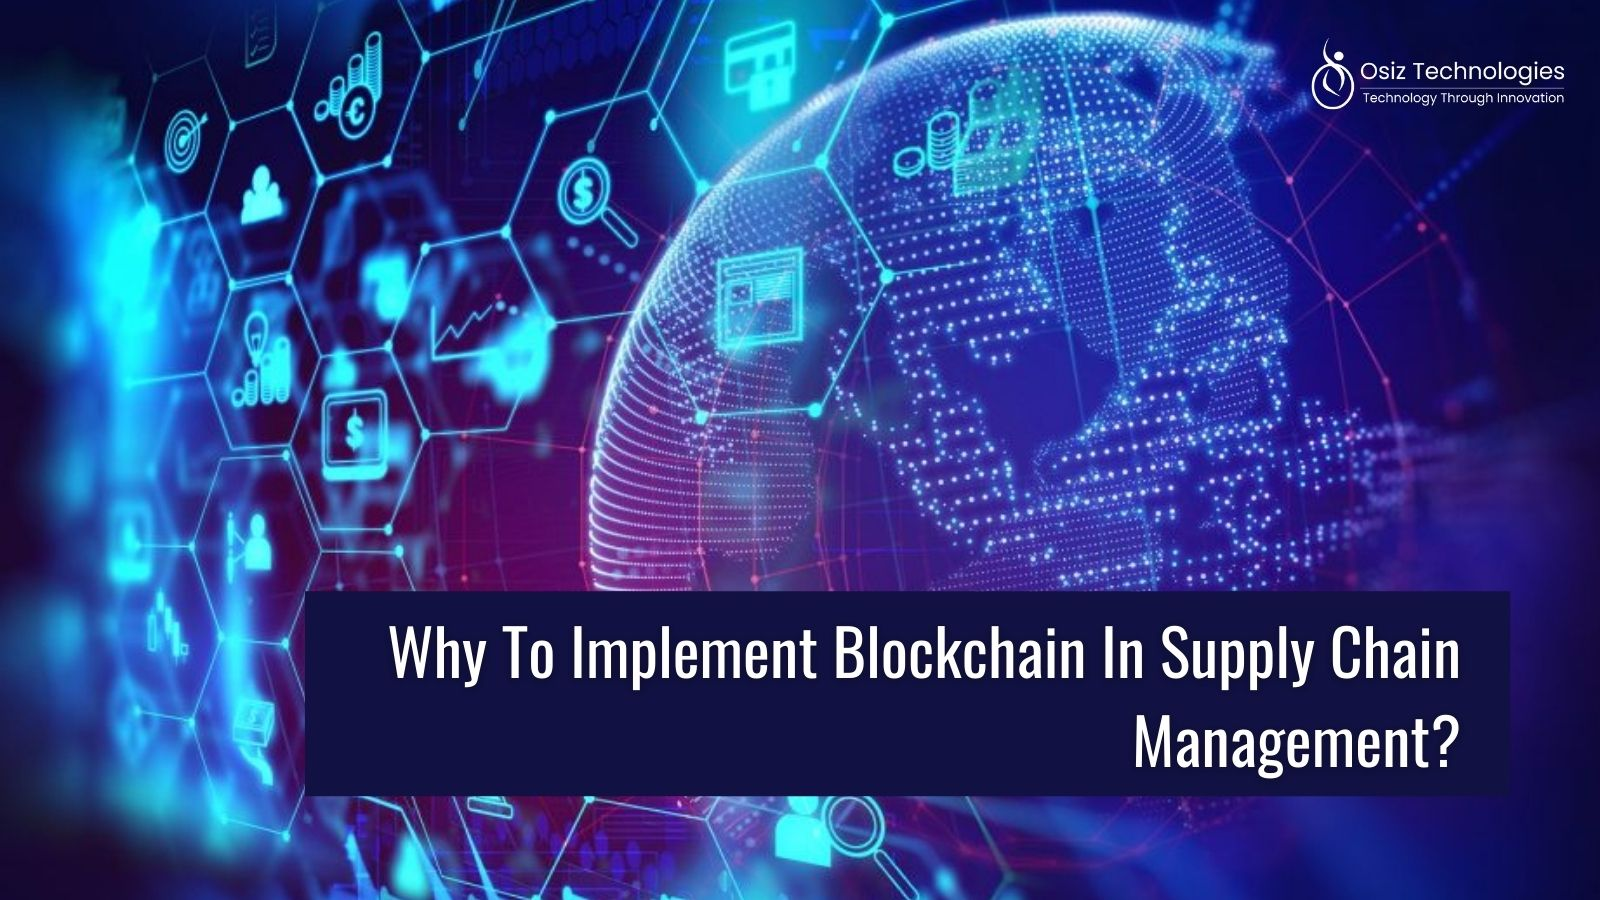 Why to implement Blockchain in Supply Chain Management?